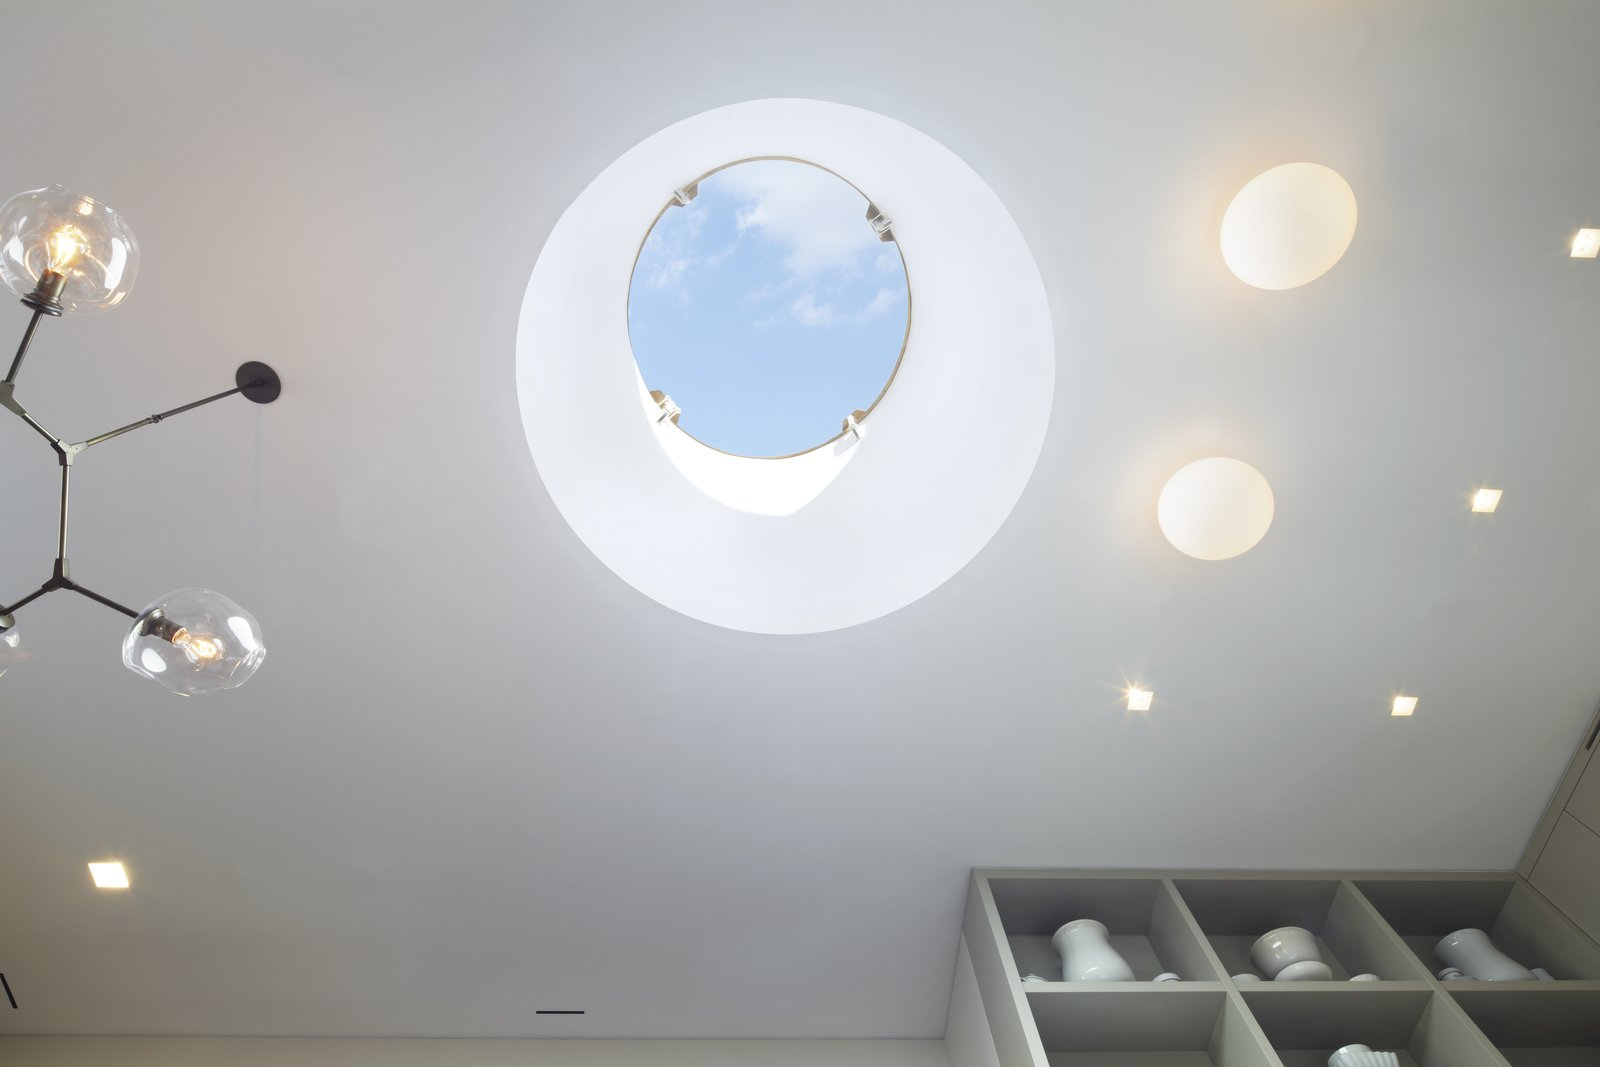 Looking up into the 5' wide drum skylight in the White Street Residence - remote controlled synchronized linear actuators open and close the skylight which allowed us to meet the NYC Code for legal light and air.  A beautiful Lindsey Adelman Branch chandelier is on the left and Flos Glo Ball fixtures paired with USAI Bevel trimless fixtures are on the right.